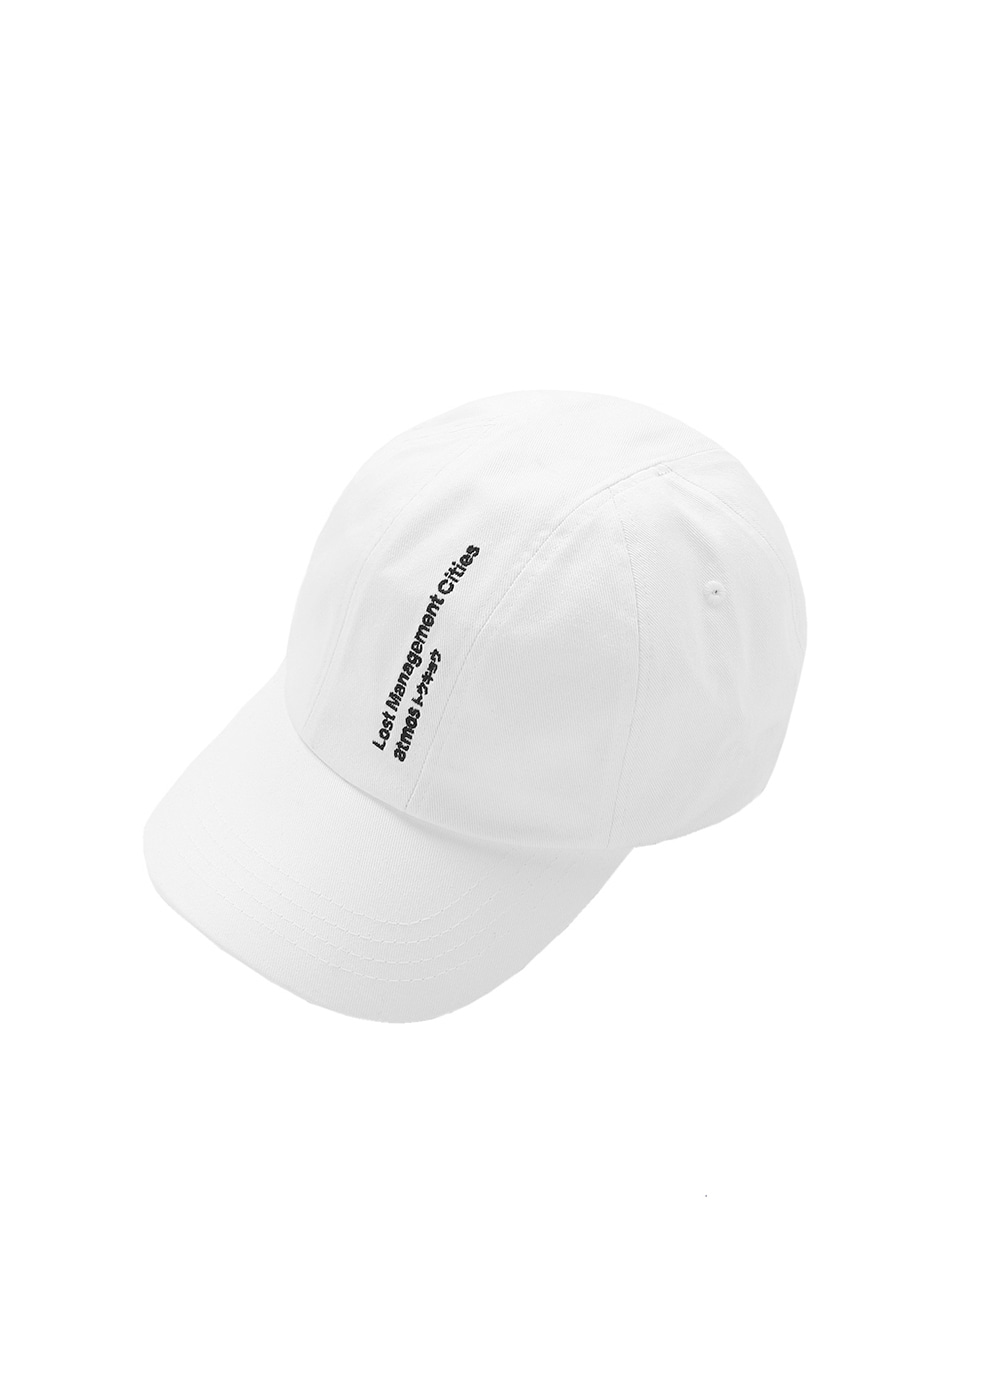 LMC x ATMOS FN 7 PANEL BALL CAP white